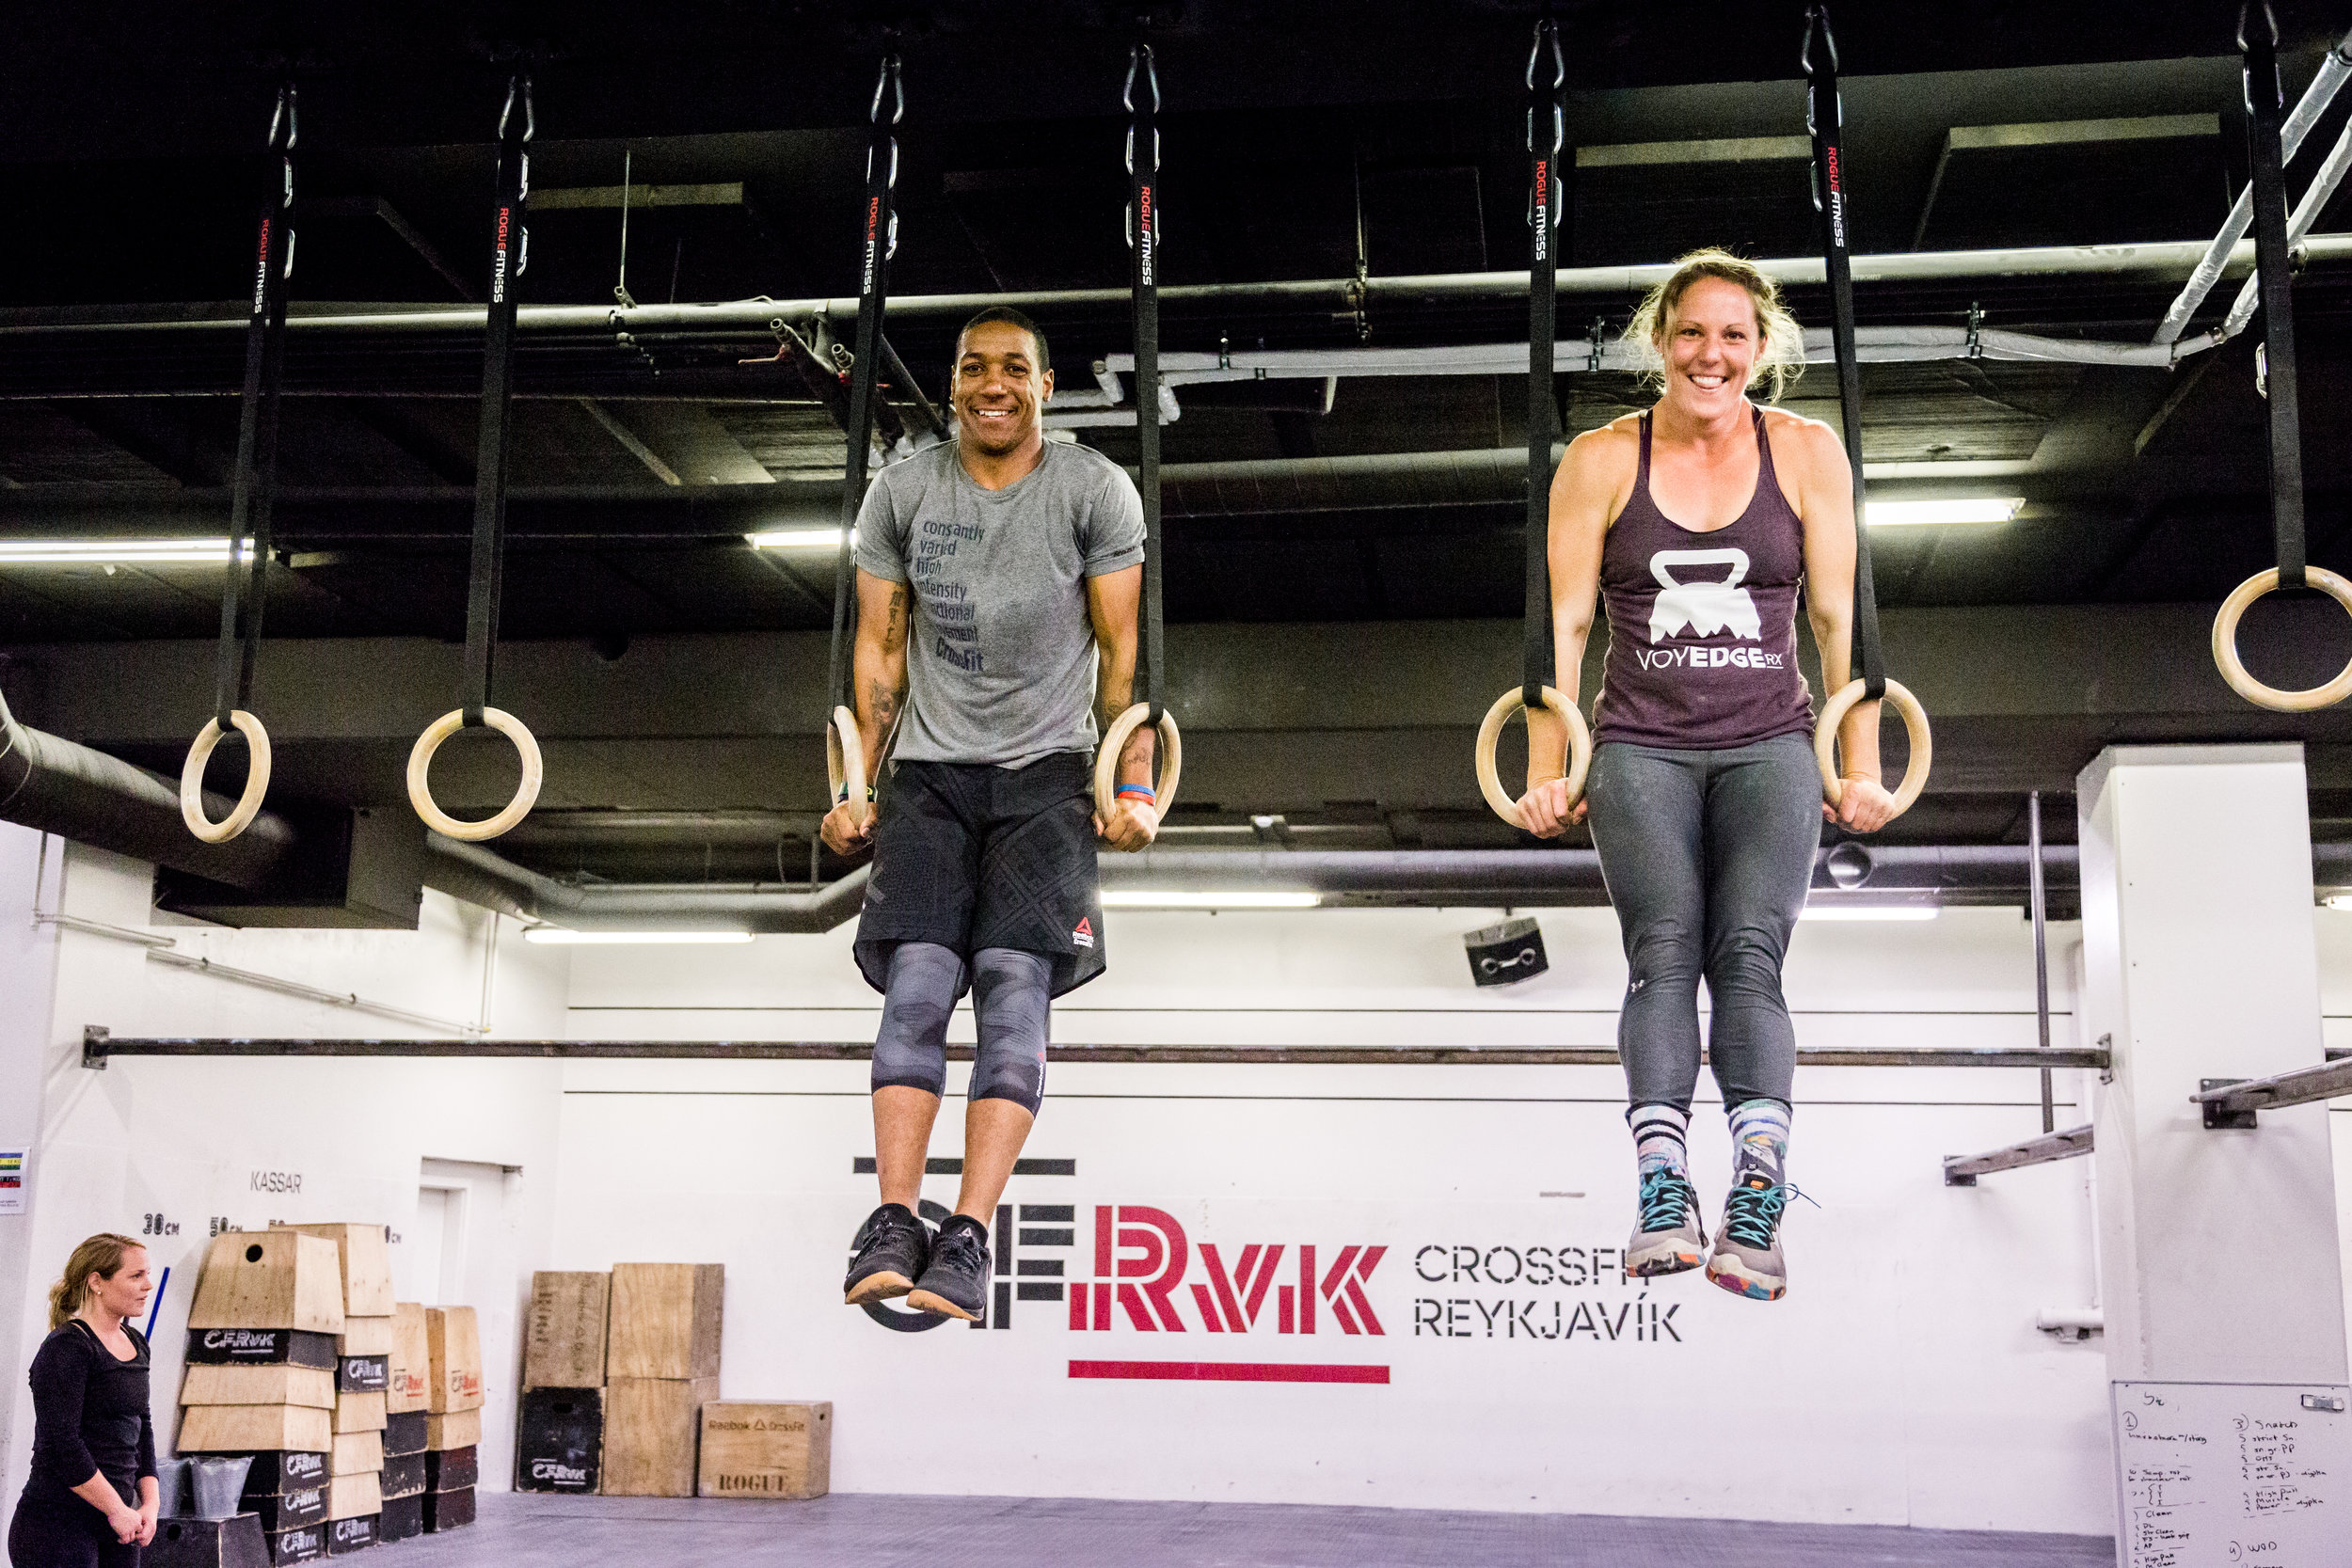 Coaches Larry & Ashley doing some cash out muscle-ups together.